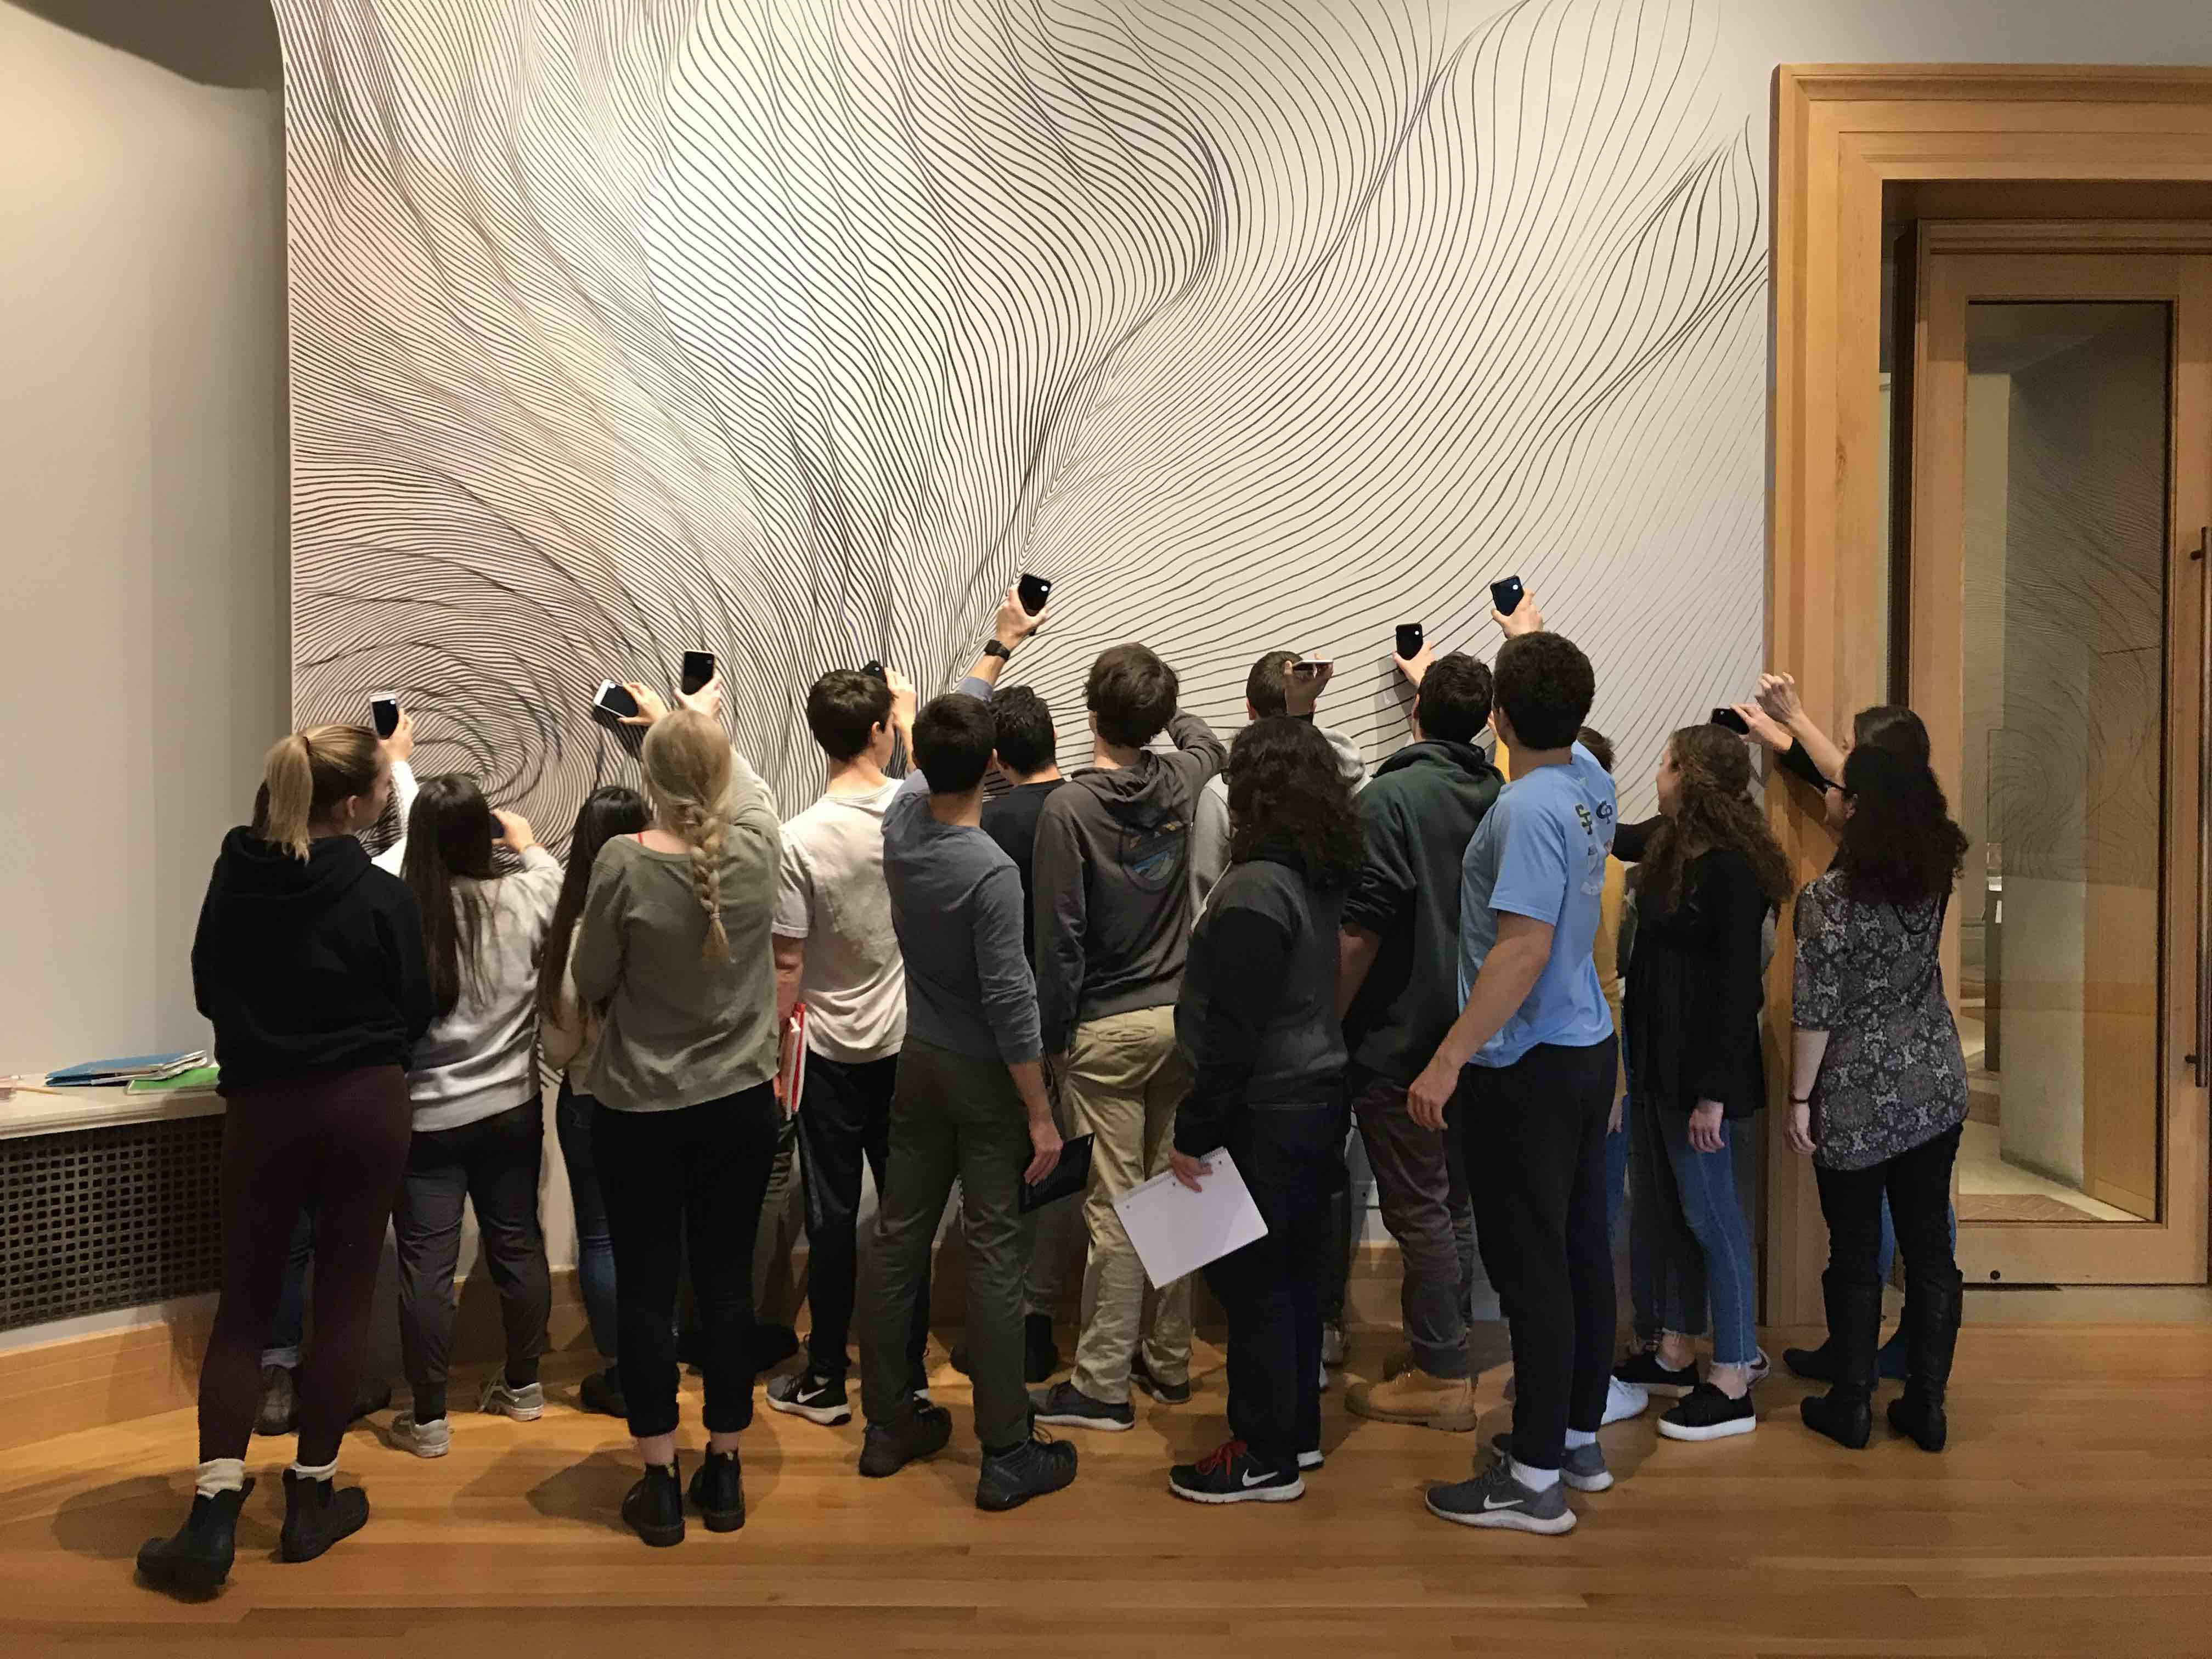 Spanish students in the museum